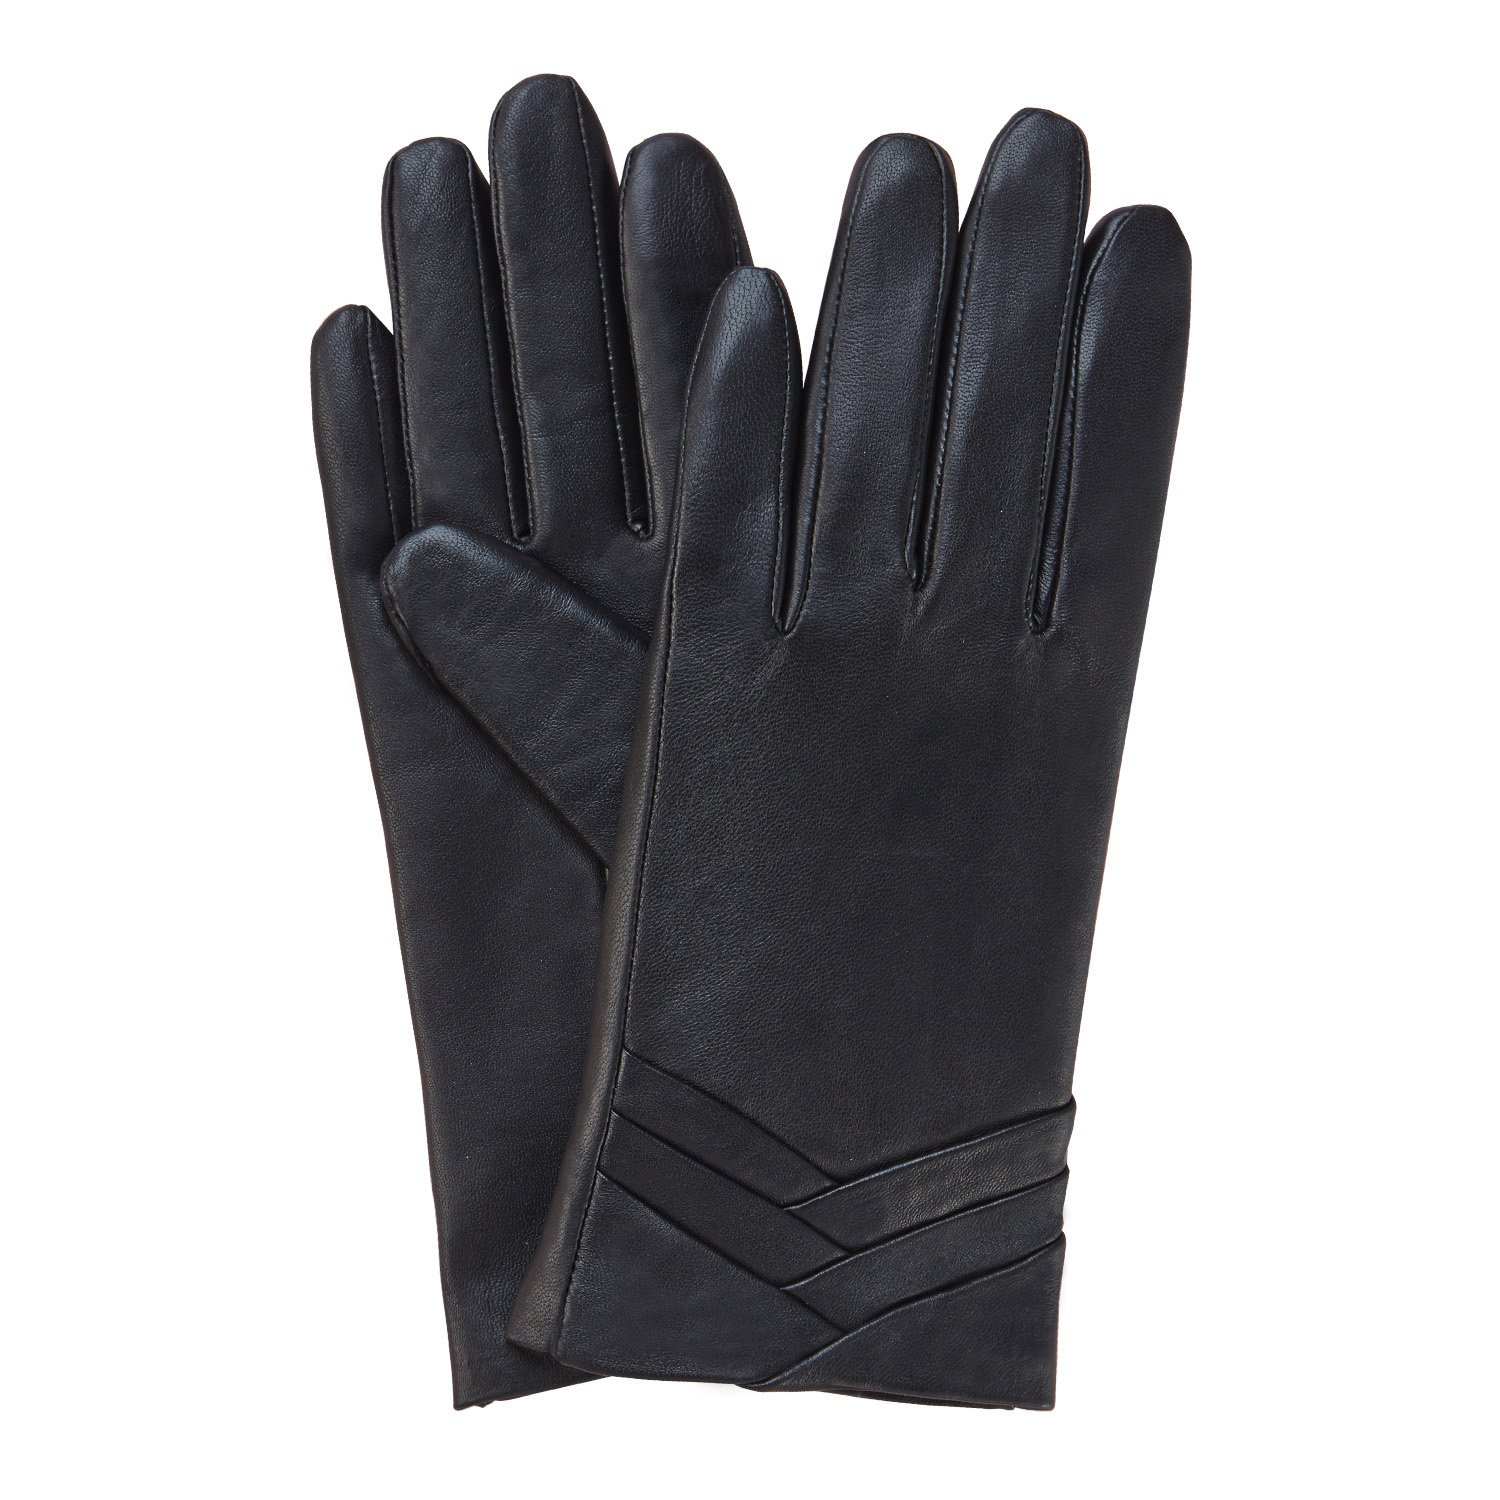 Vw leather driving gloves - Gsg Ladies Full Palm Touchscreen Spain Genuine Nappa Leather Gloves Womens Original Design 7 Smart Black At Amazon Women S Clothing Store